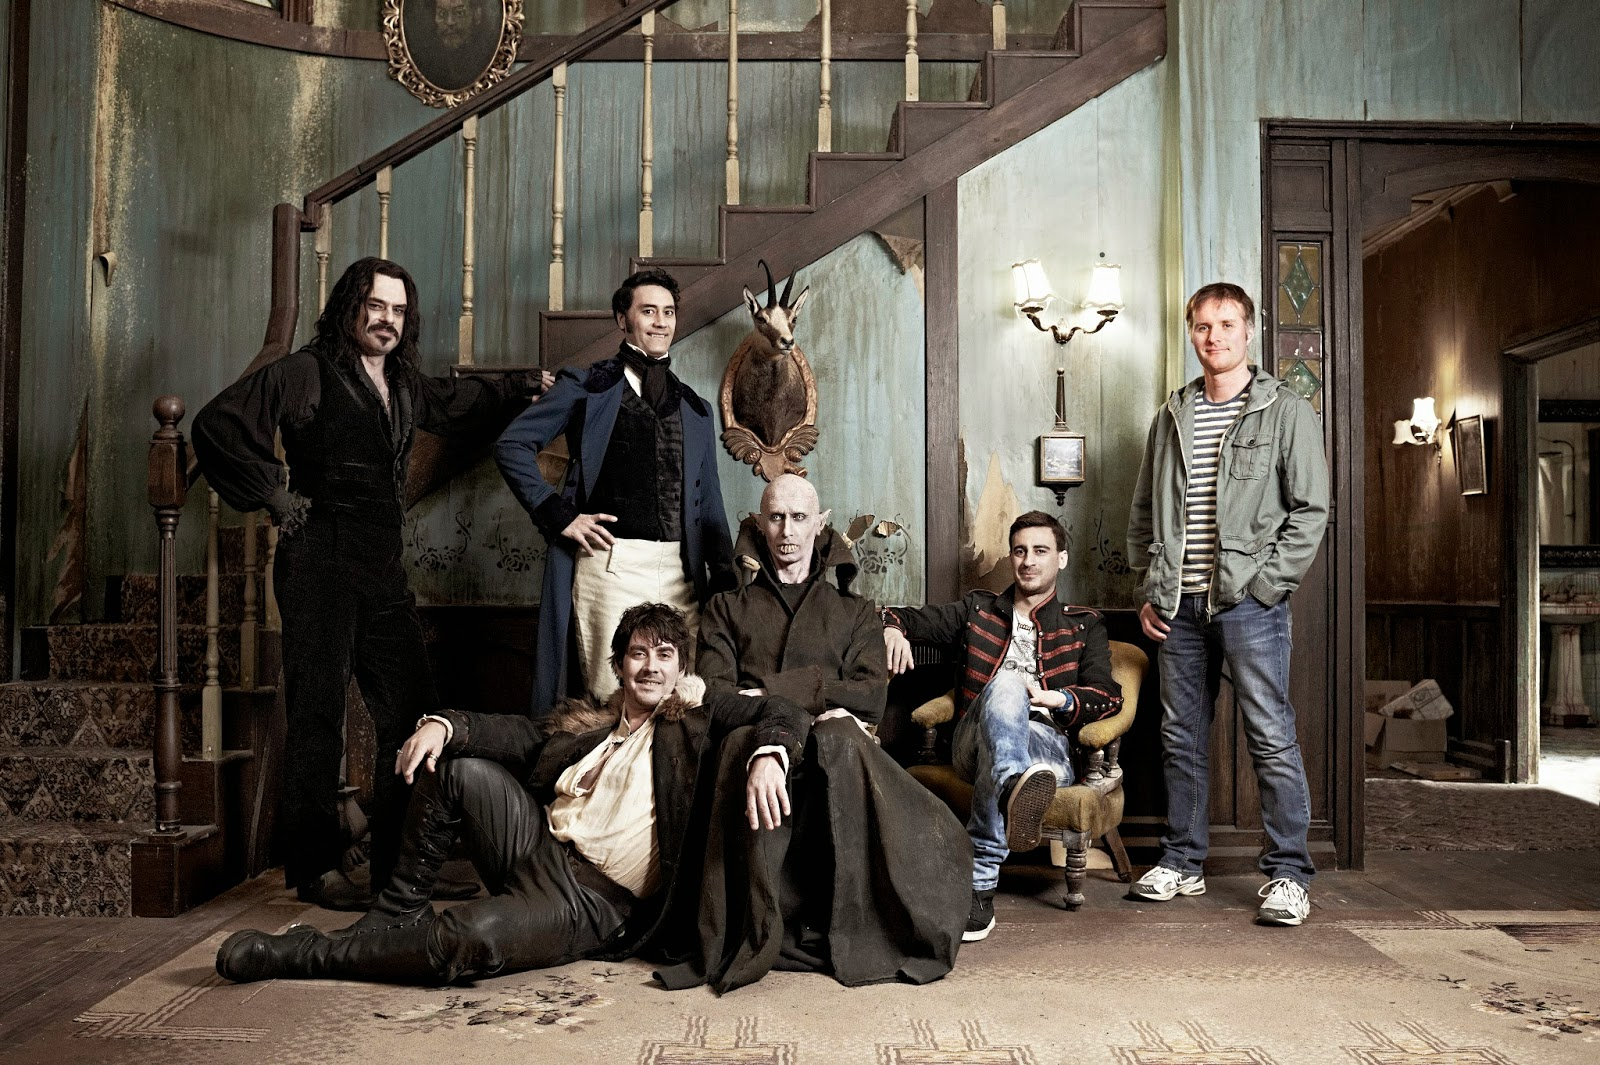 3 Zimmer Küche Diele Sarg 5 Zimmer Küche Sarg Ot What We Do In The Shadows Die